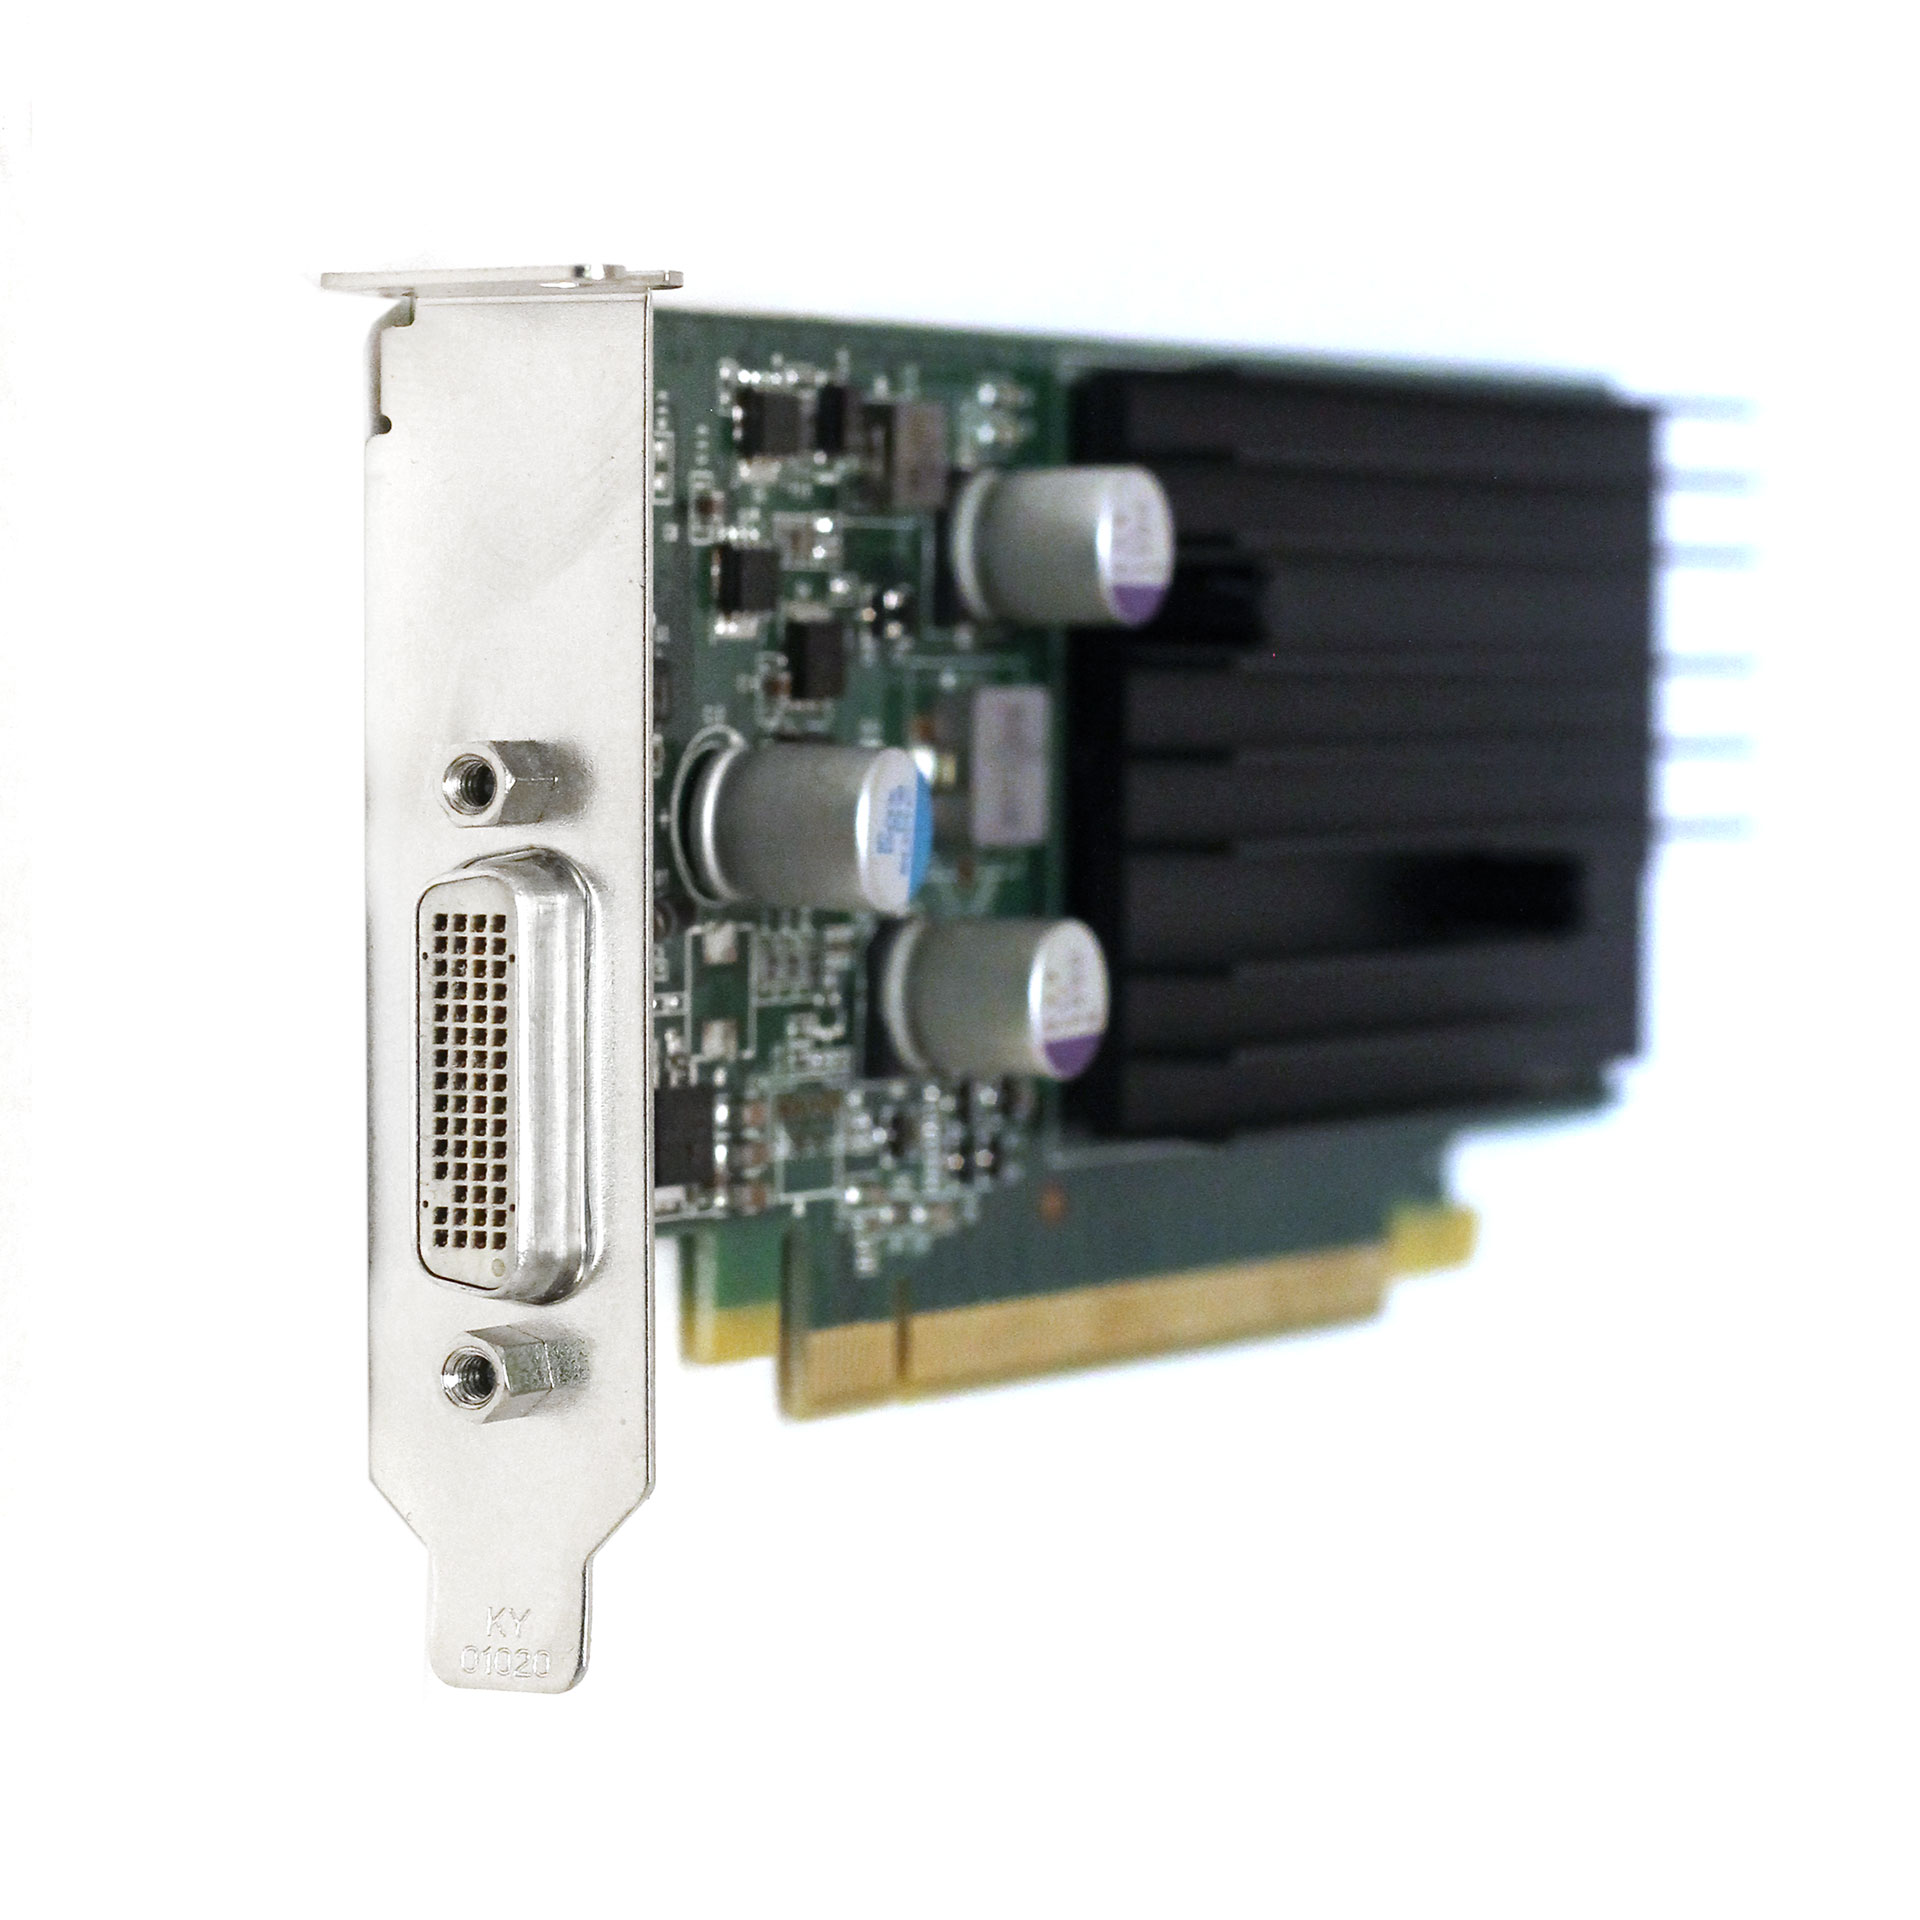 nVidia Quadro FX 370 Video Card PNY VCQFX370LP-PCIE-T